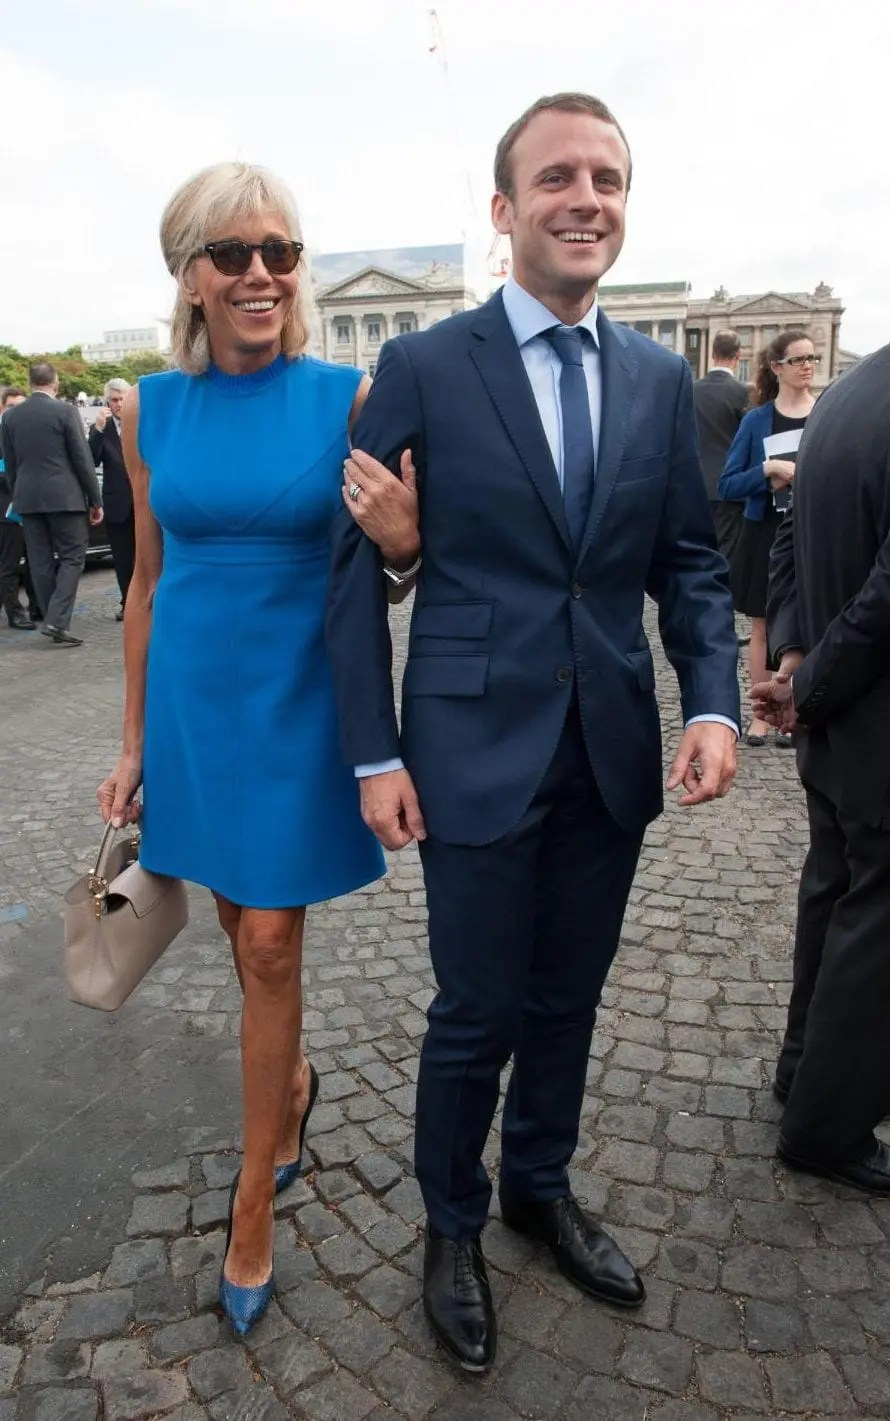 Brigitte Macron First Fashion Lady of France by Runway Magazine